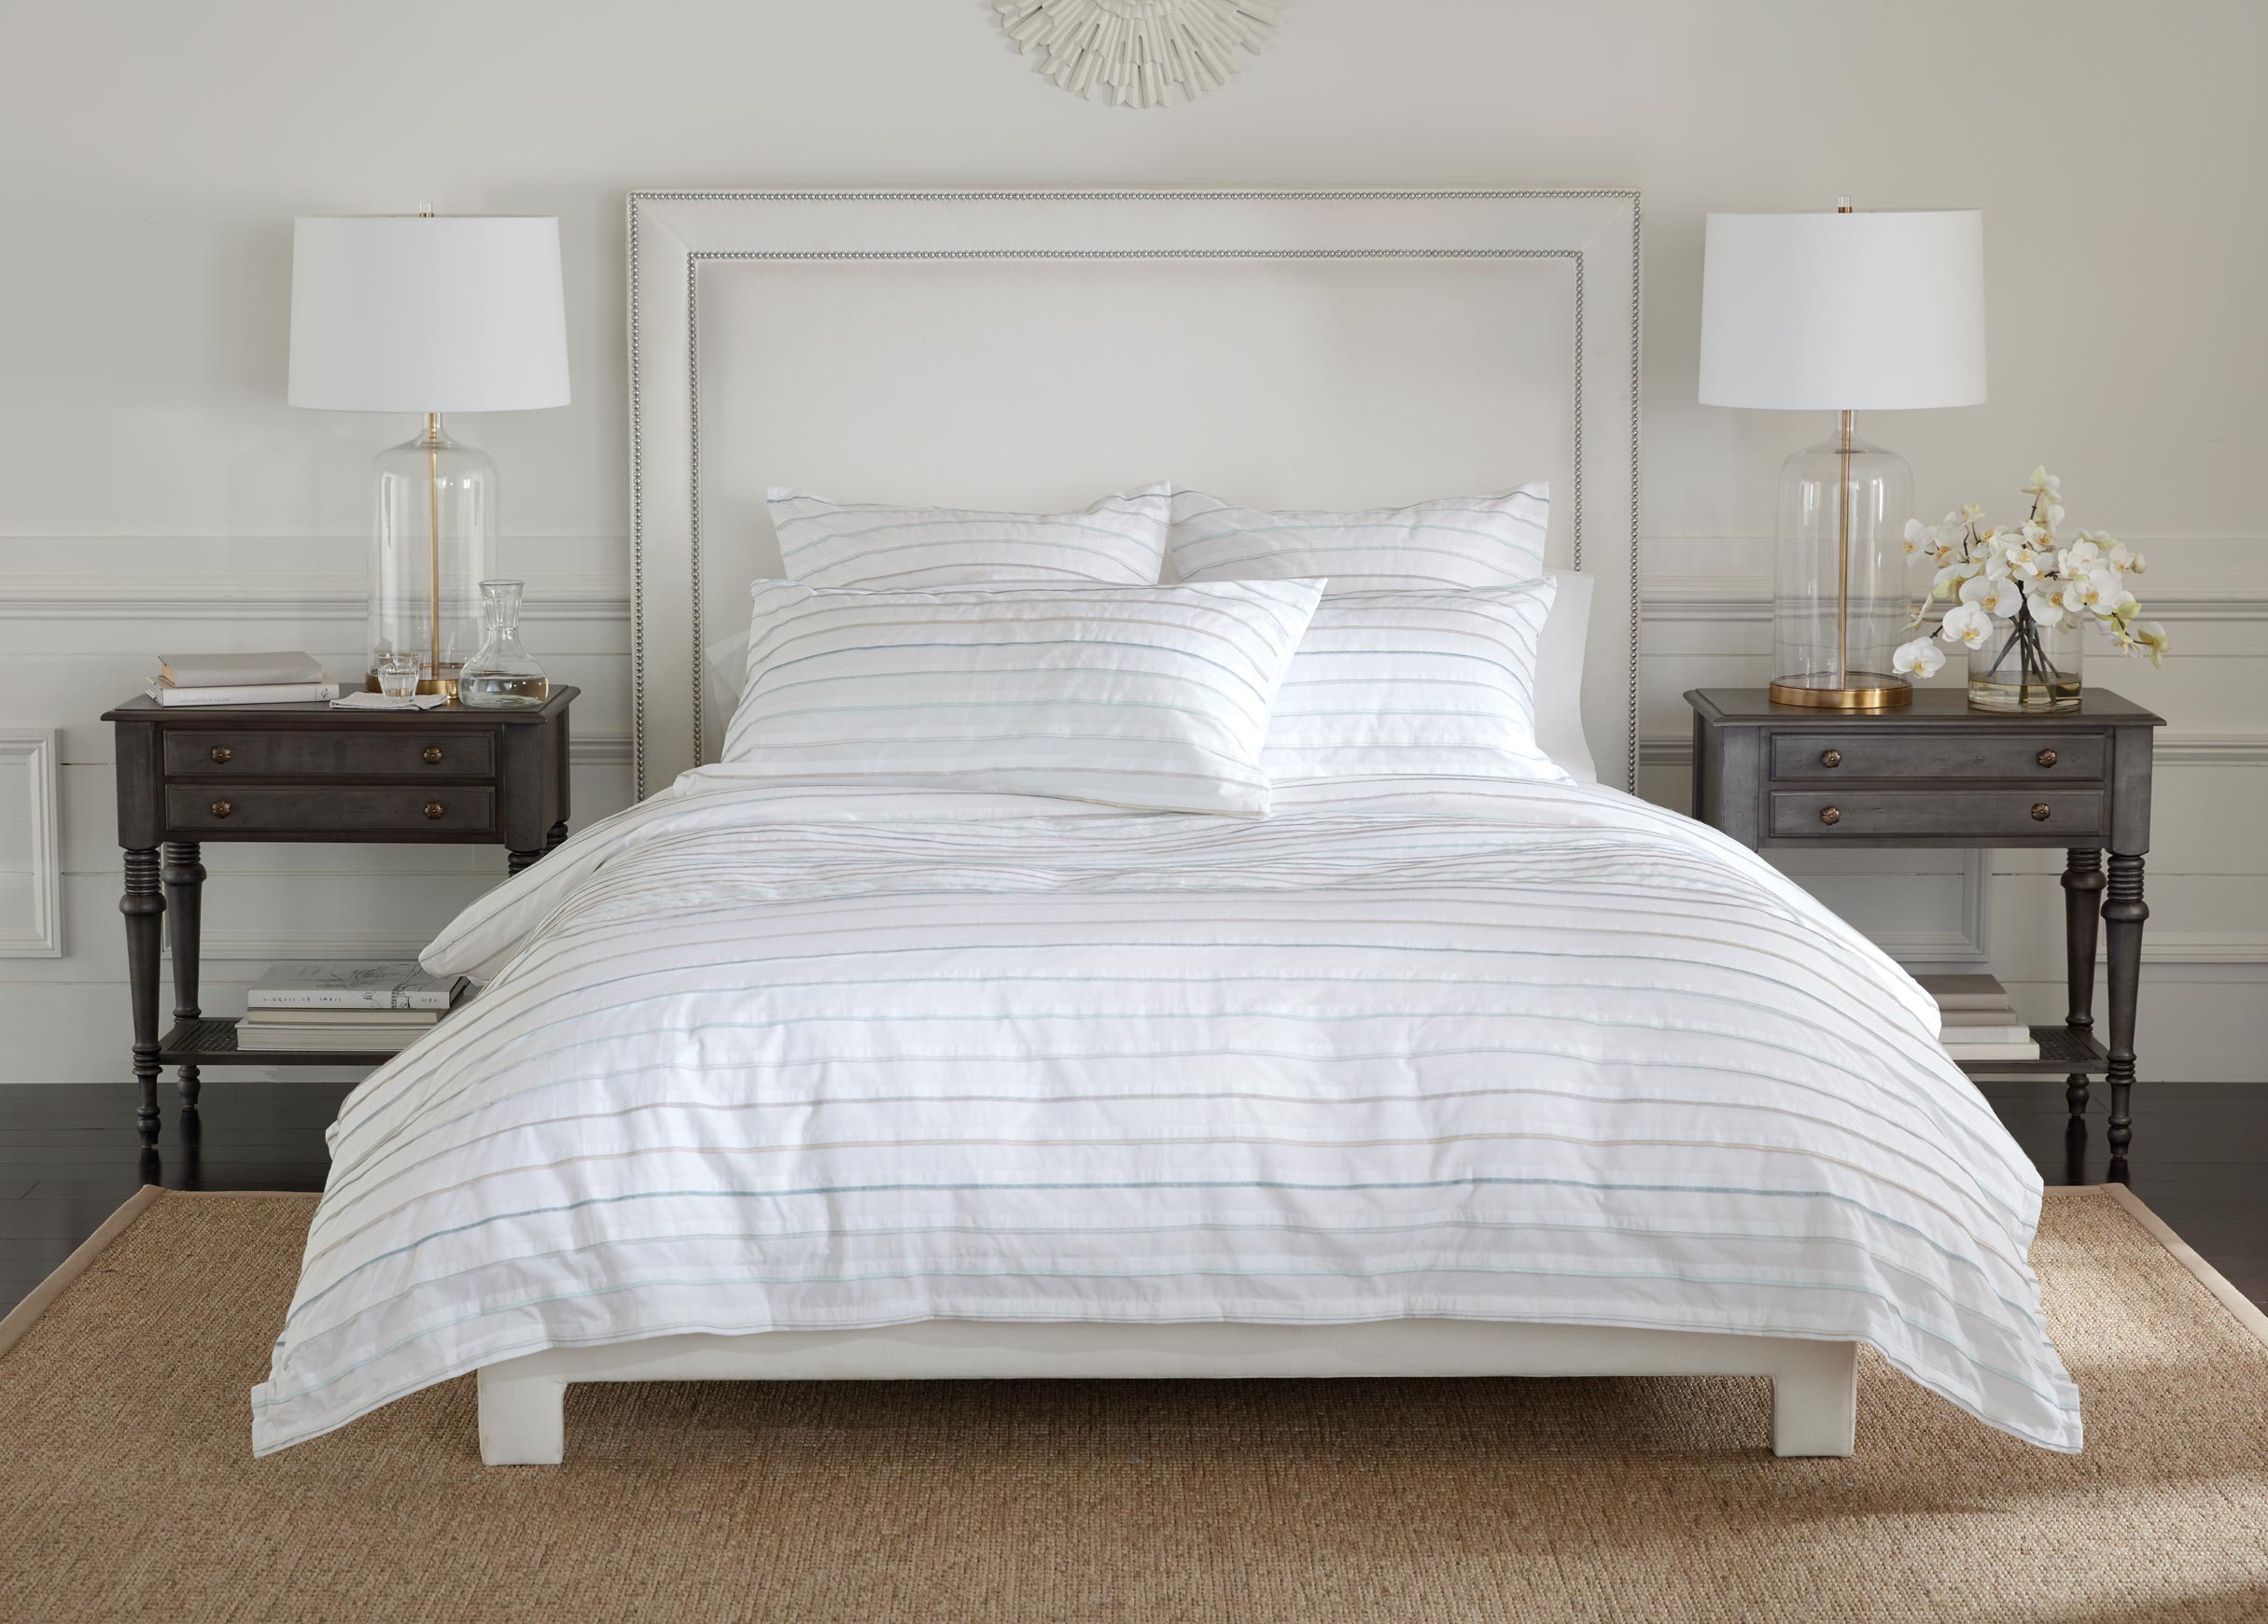 dp night duvet veronica pintuck pleat set white home a piece chic pleated pinch decor nice queen cover